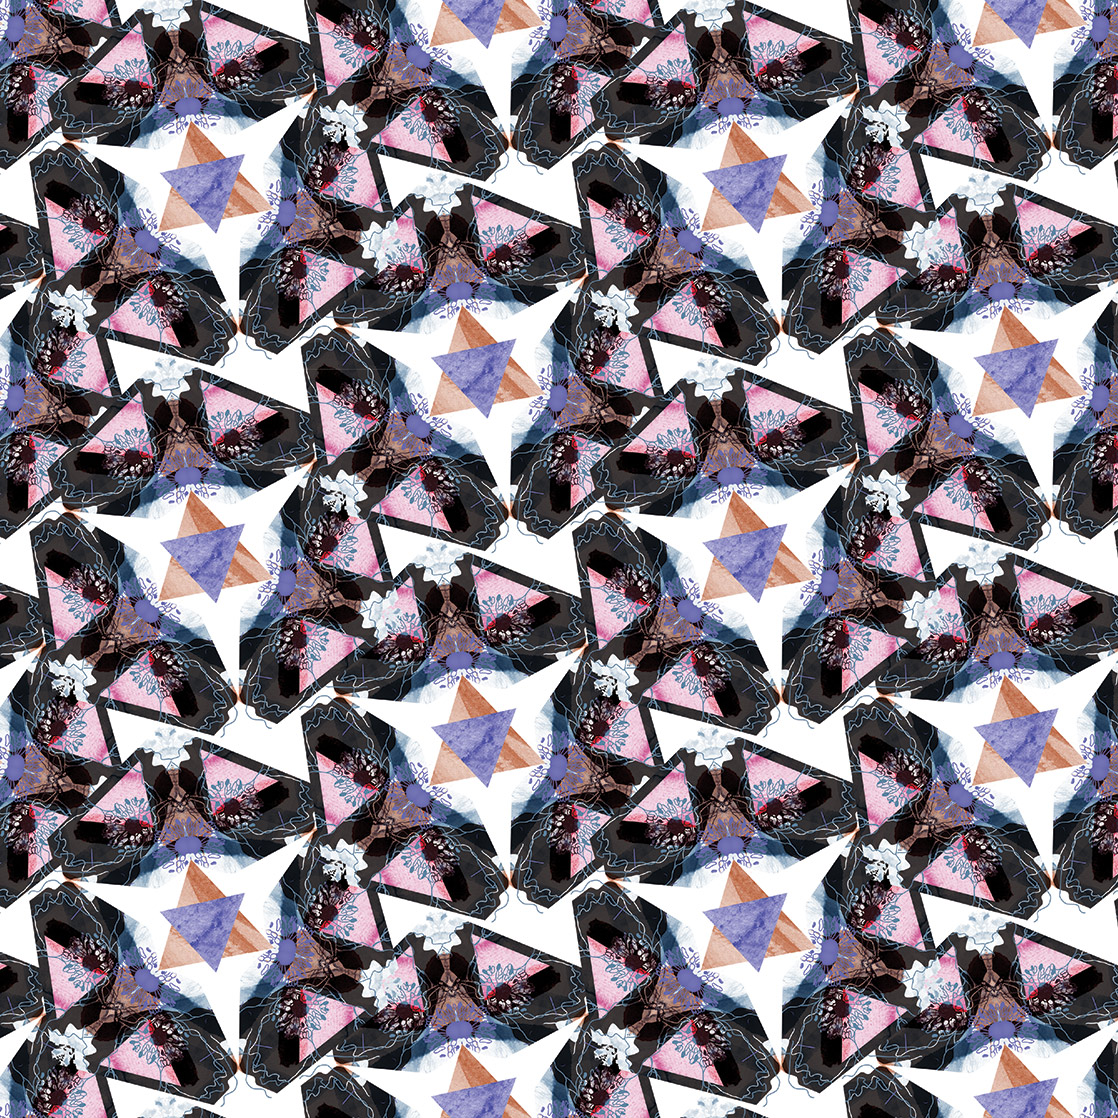 Kaleidoscope – Pattern 6